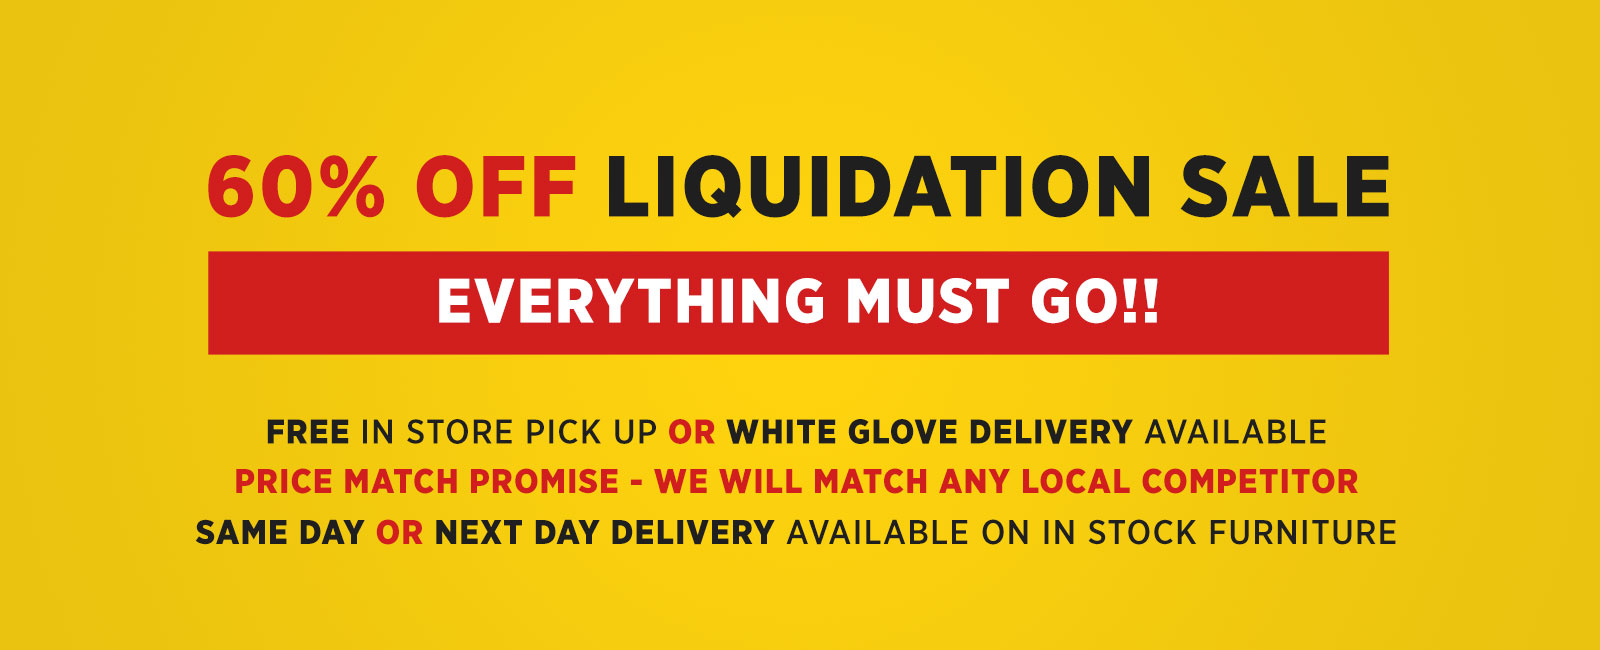 Liquidation-Sale-Banner_1_10_Theme